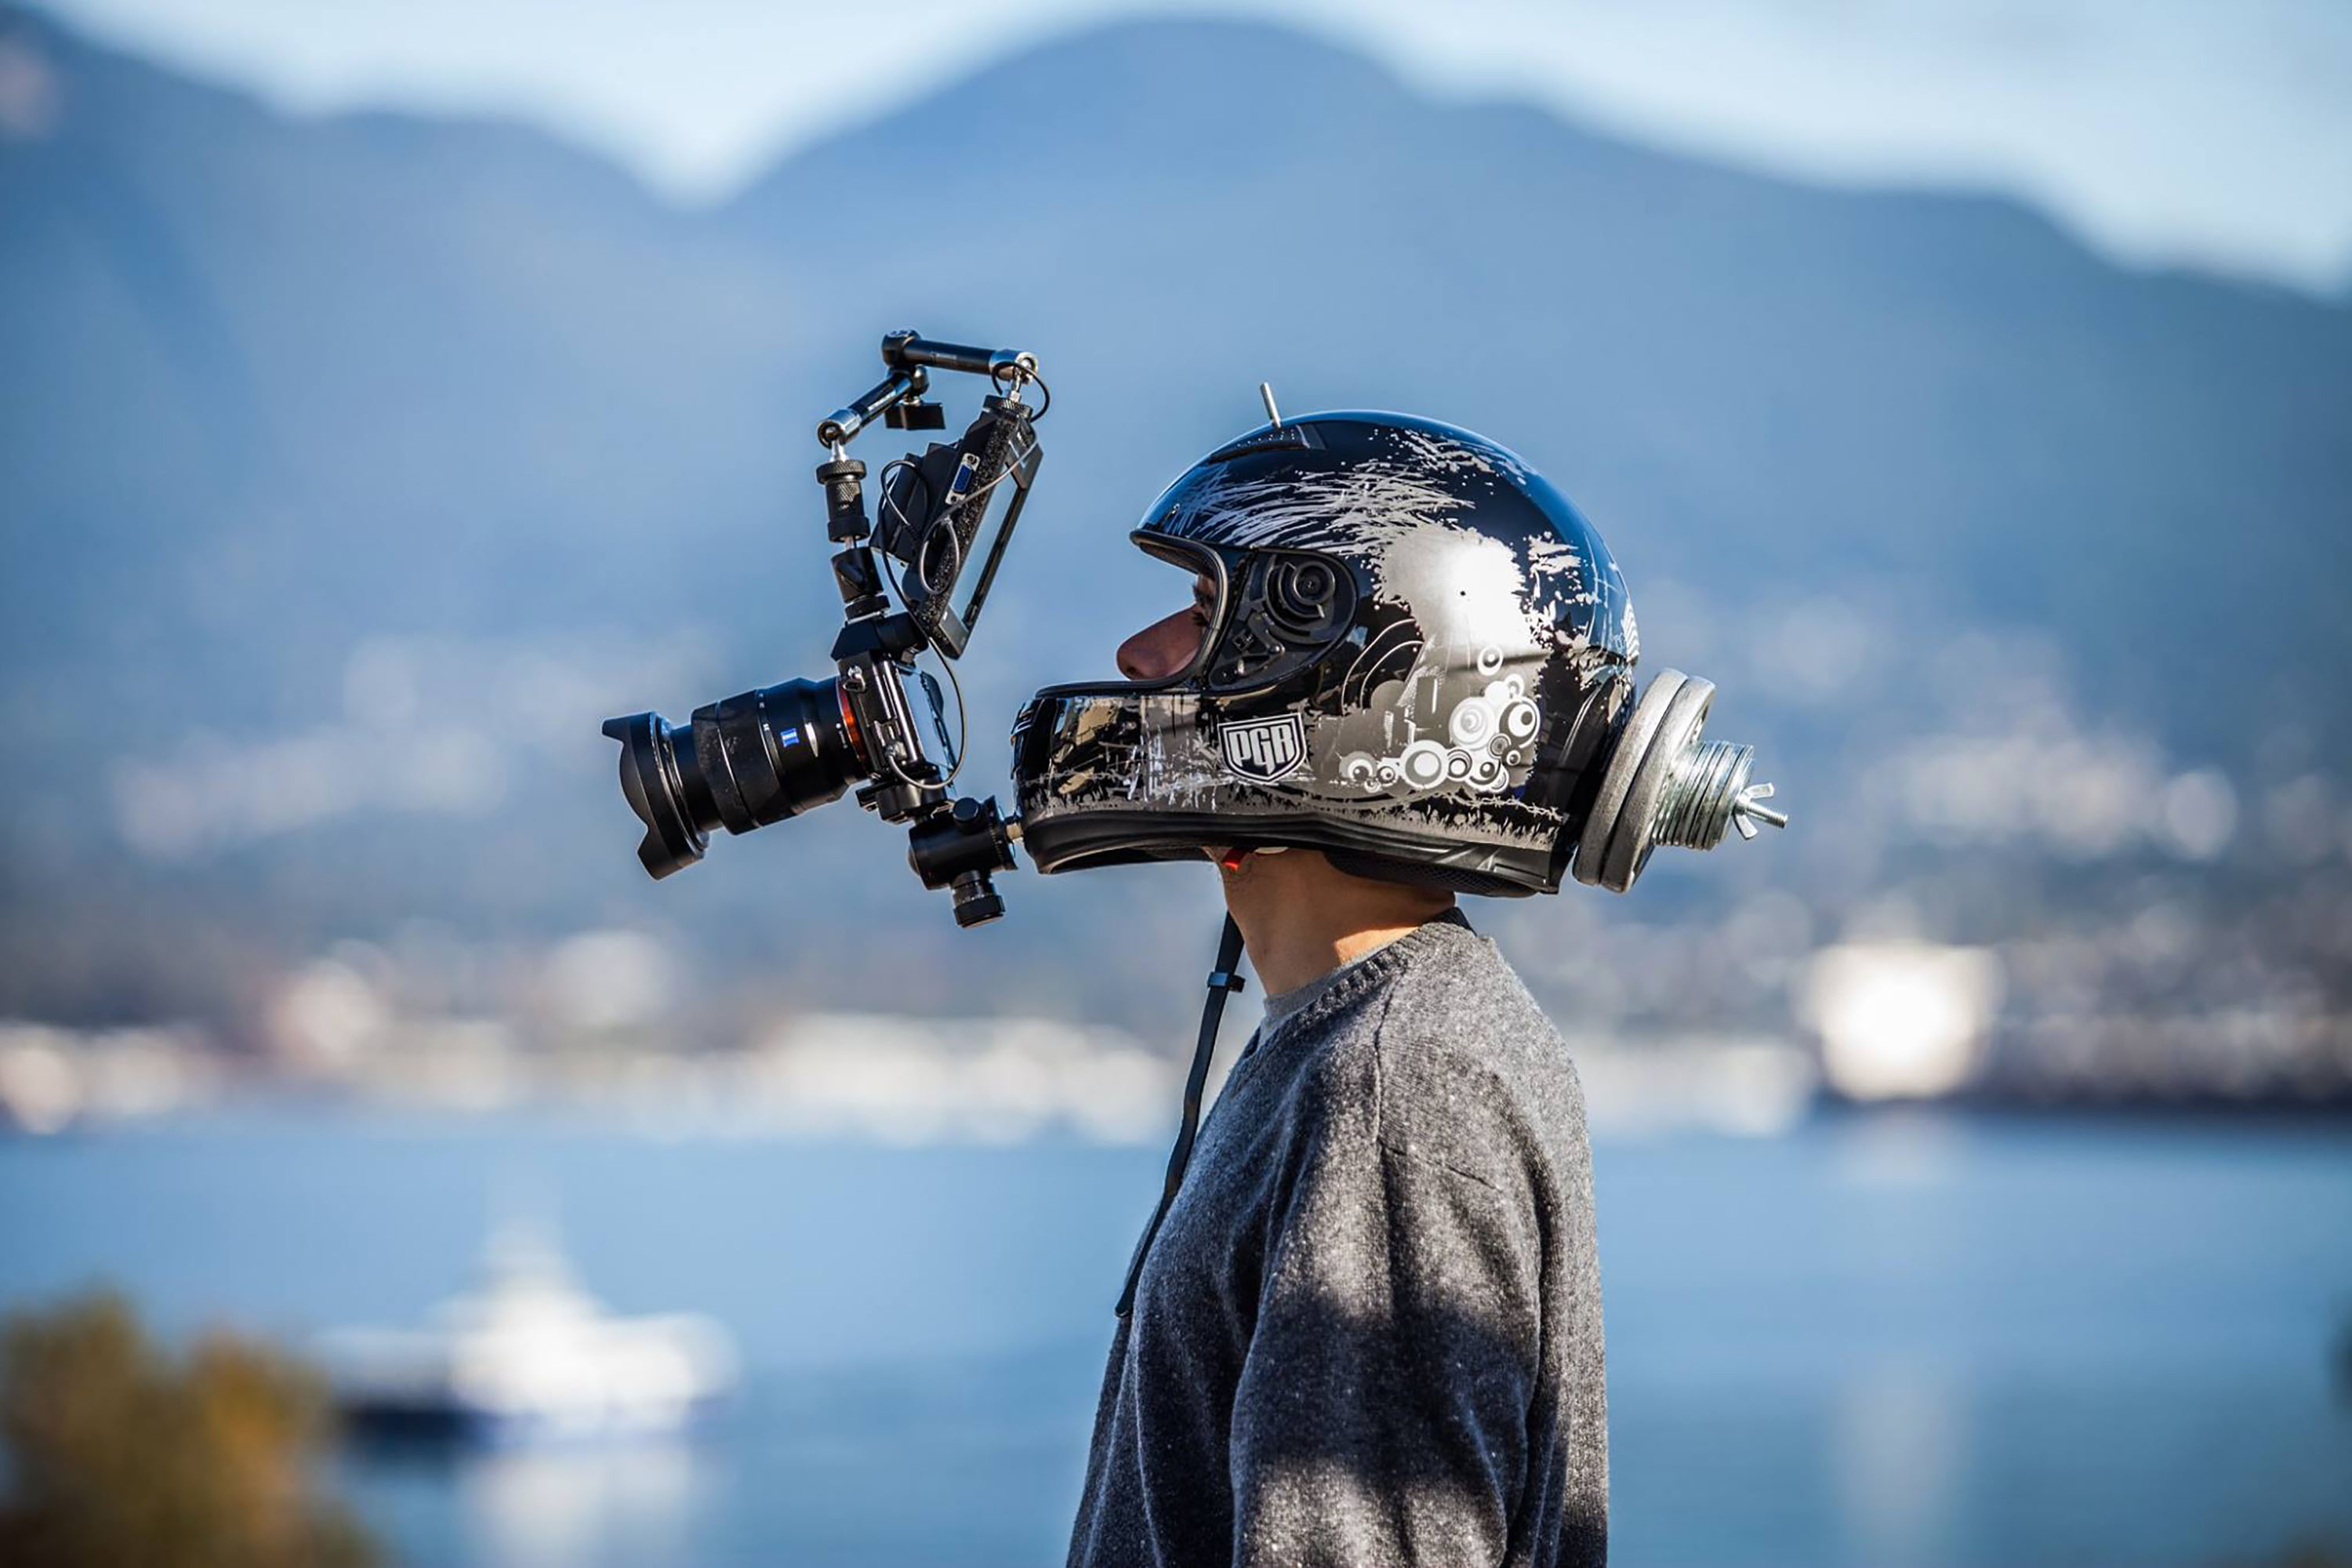 vancouver_video_production_Pixel_Motion_Films_POV_rig_ntrust_1_BANNER